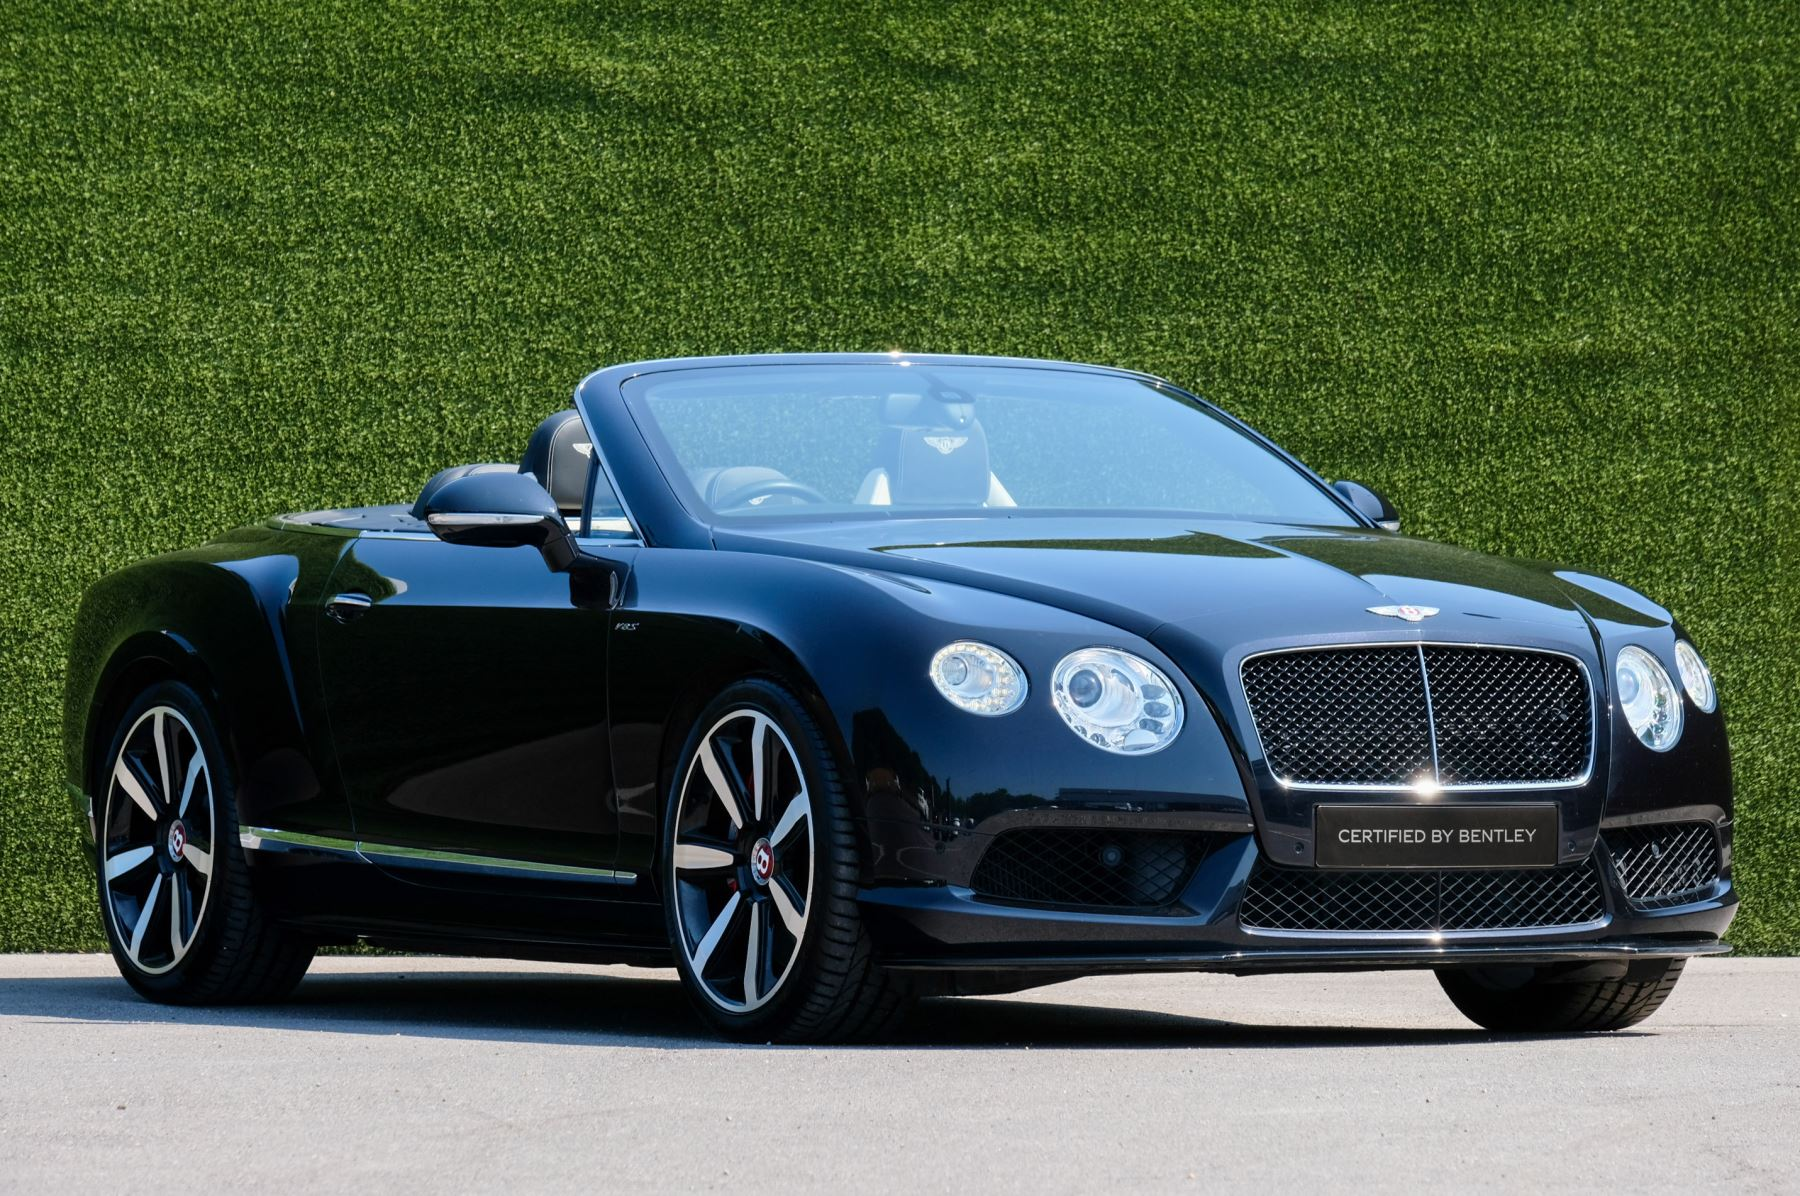 Bentley Continental GTC 4.0 V8 S - Mulliner Driving Specification Automatic 2 door Convertible